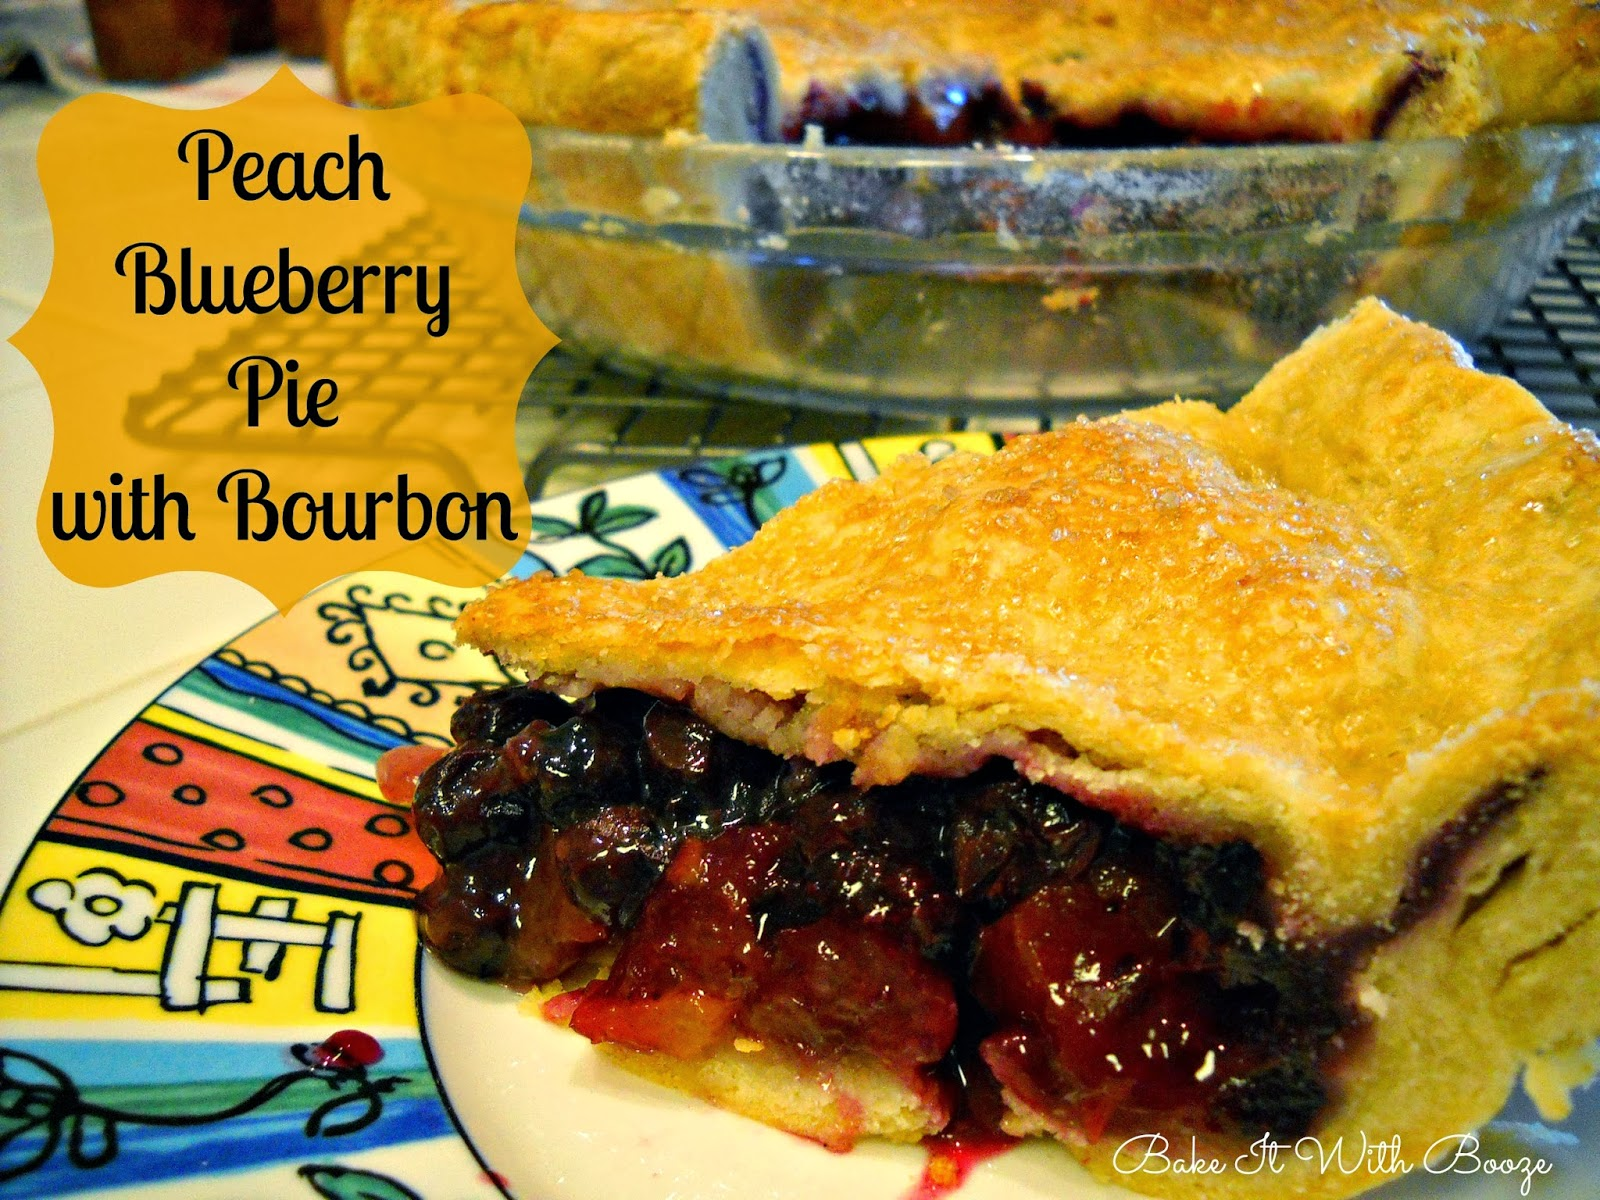 Peach Blueberry Pie with Bourbon